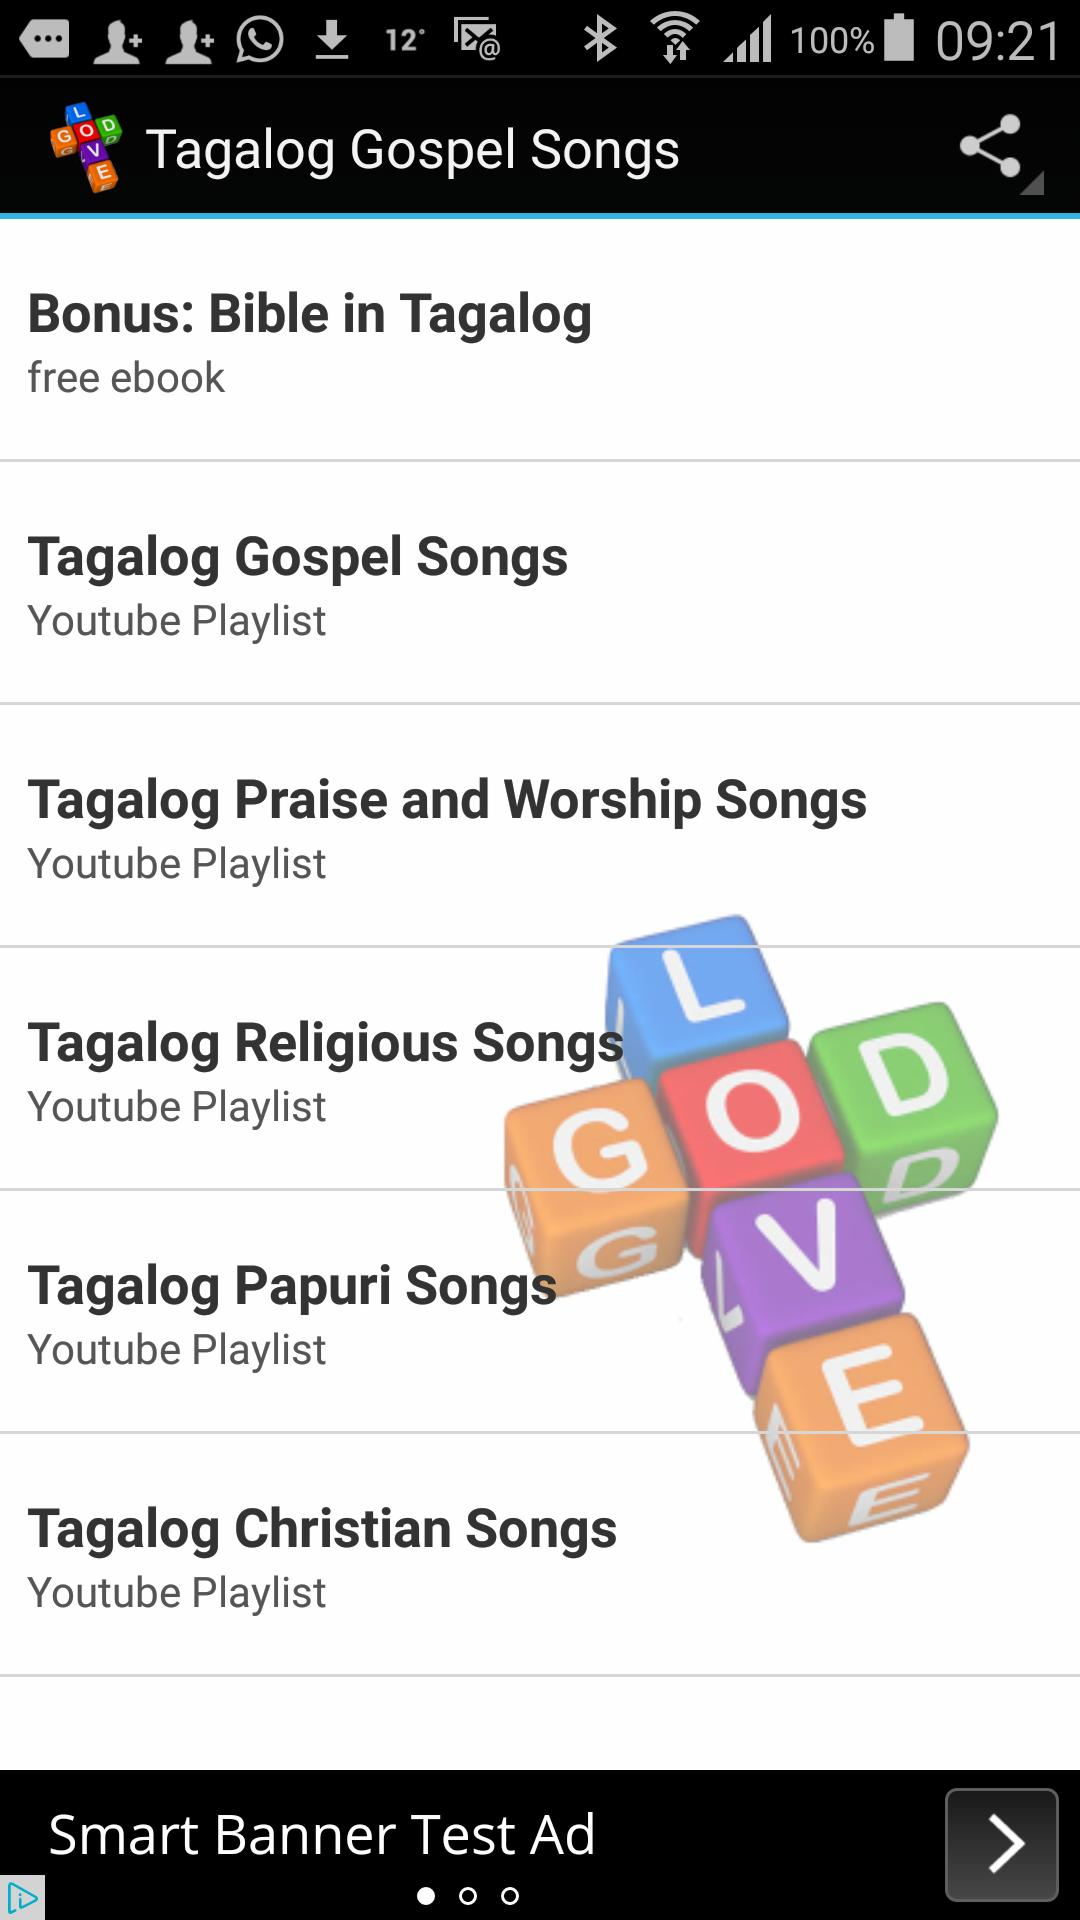 Tagalog Gospel Songs for Android - APK Download